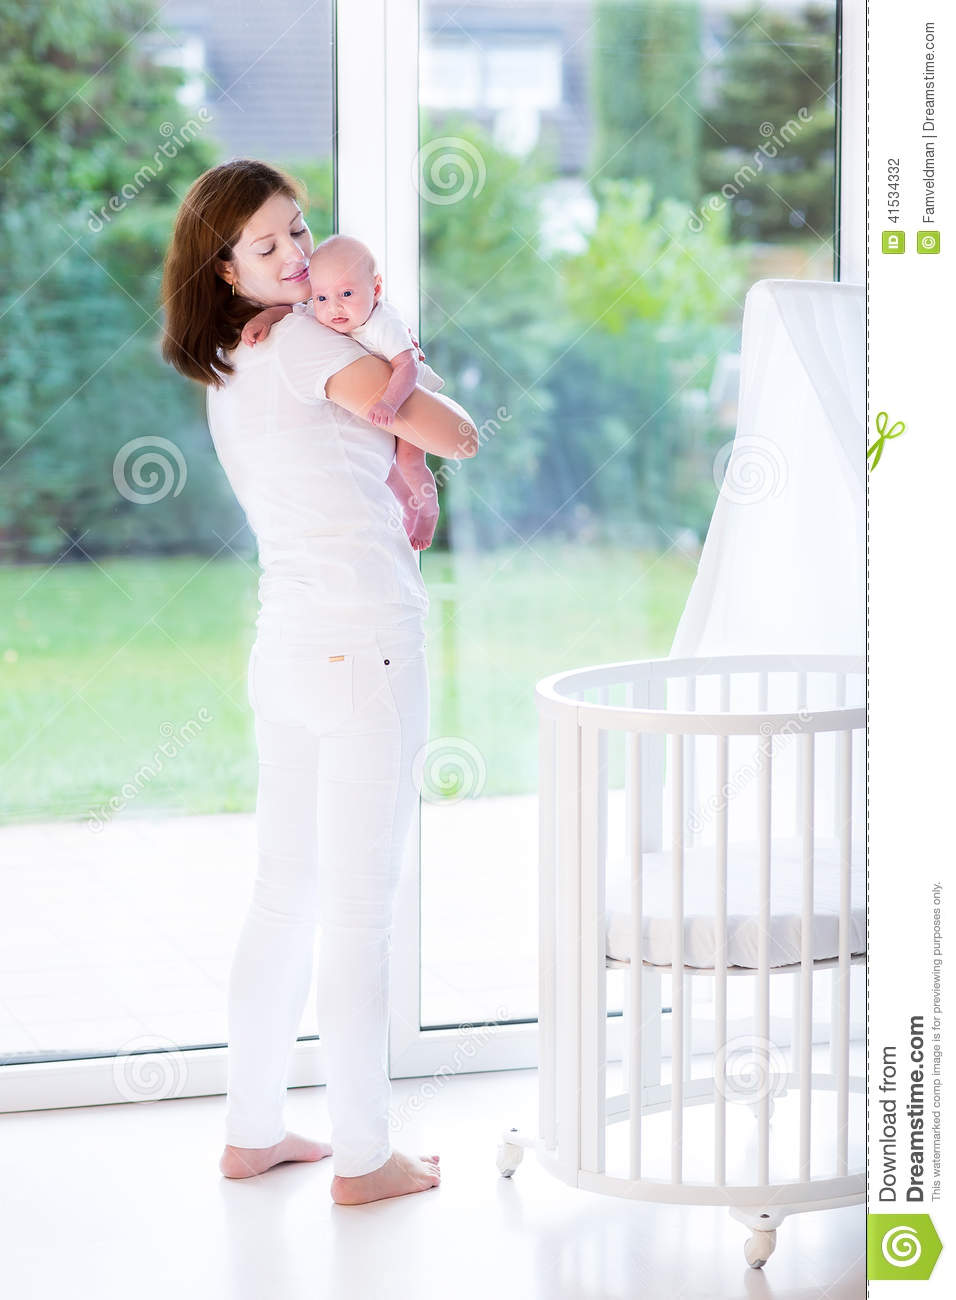 Baby bed next to bed - Mother Putting Newborn Baby In Bed Next To Window